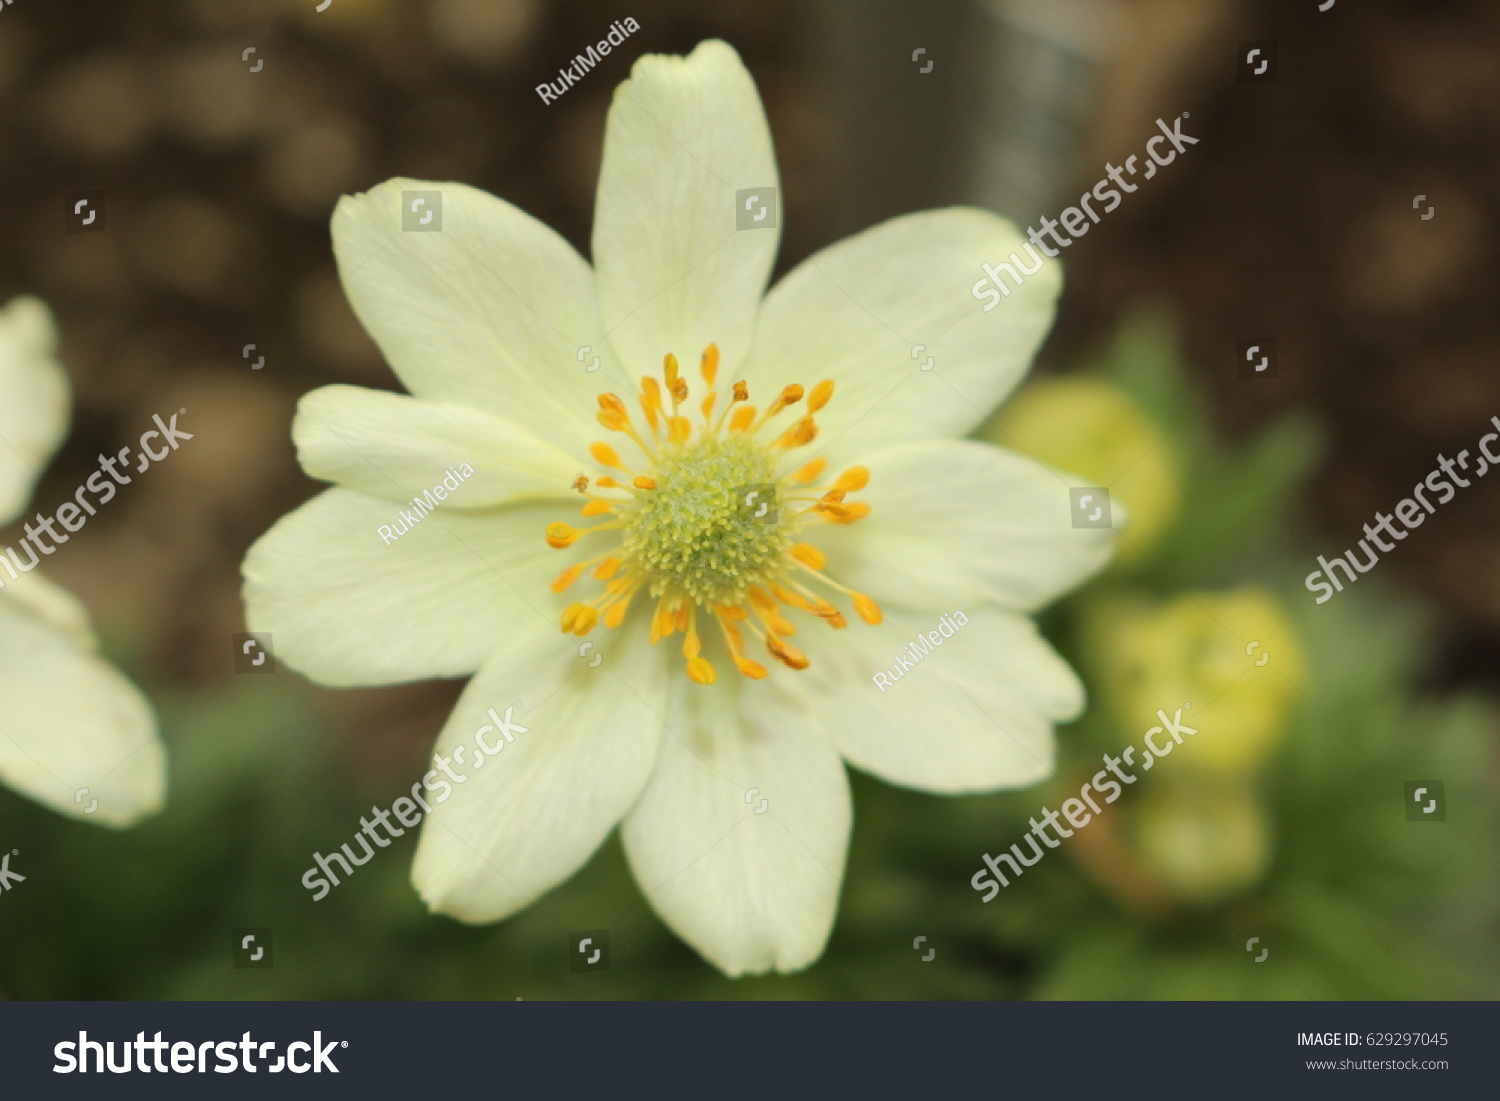 Yellow Anemone Flower Or Cyclamen Leaved Anemone Stock Photo Edit